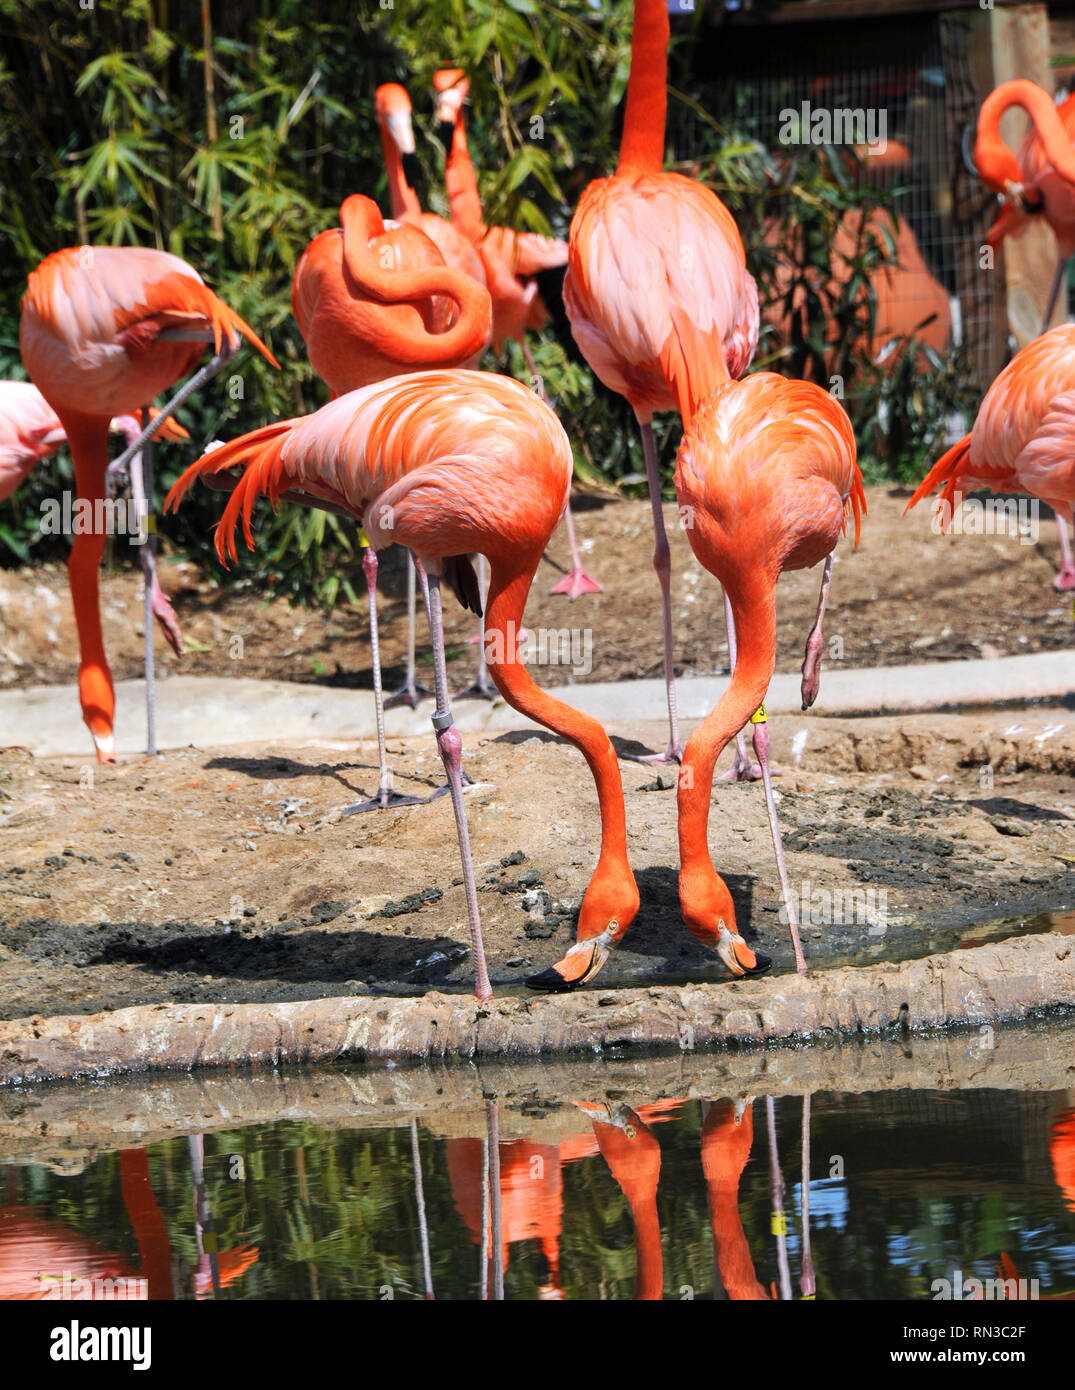 Two flamingo imitate each other.  Both have heads down and necks bent at the exact same angle.  Reflection in pool duplicated duo. - Stock Image